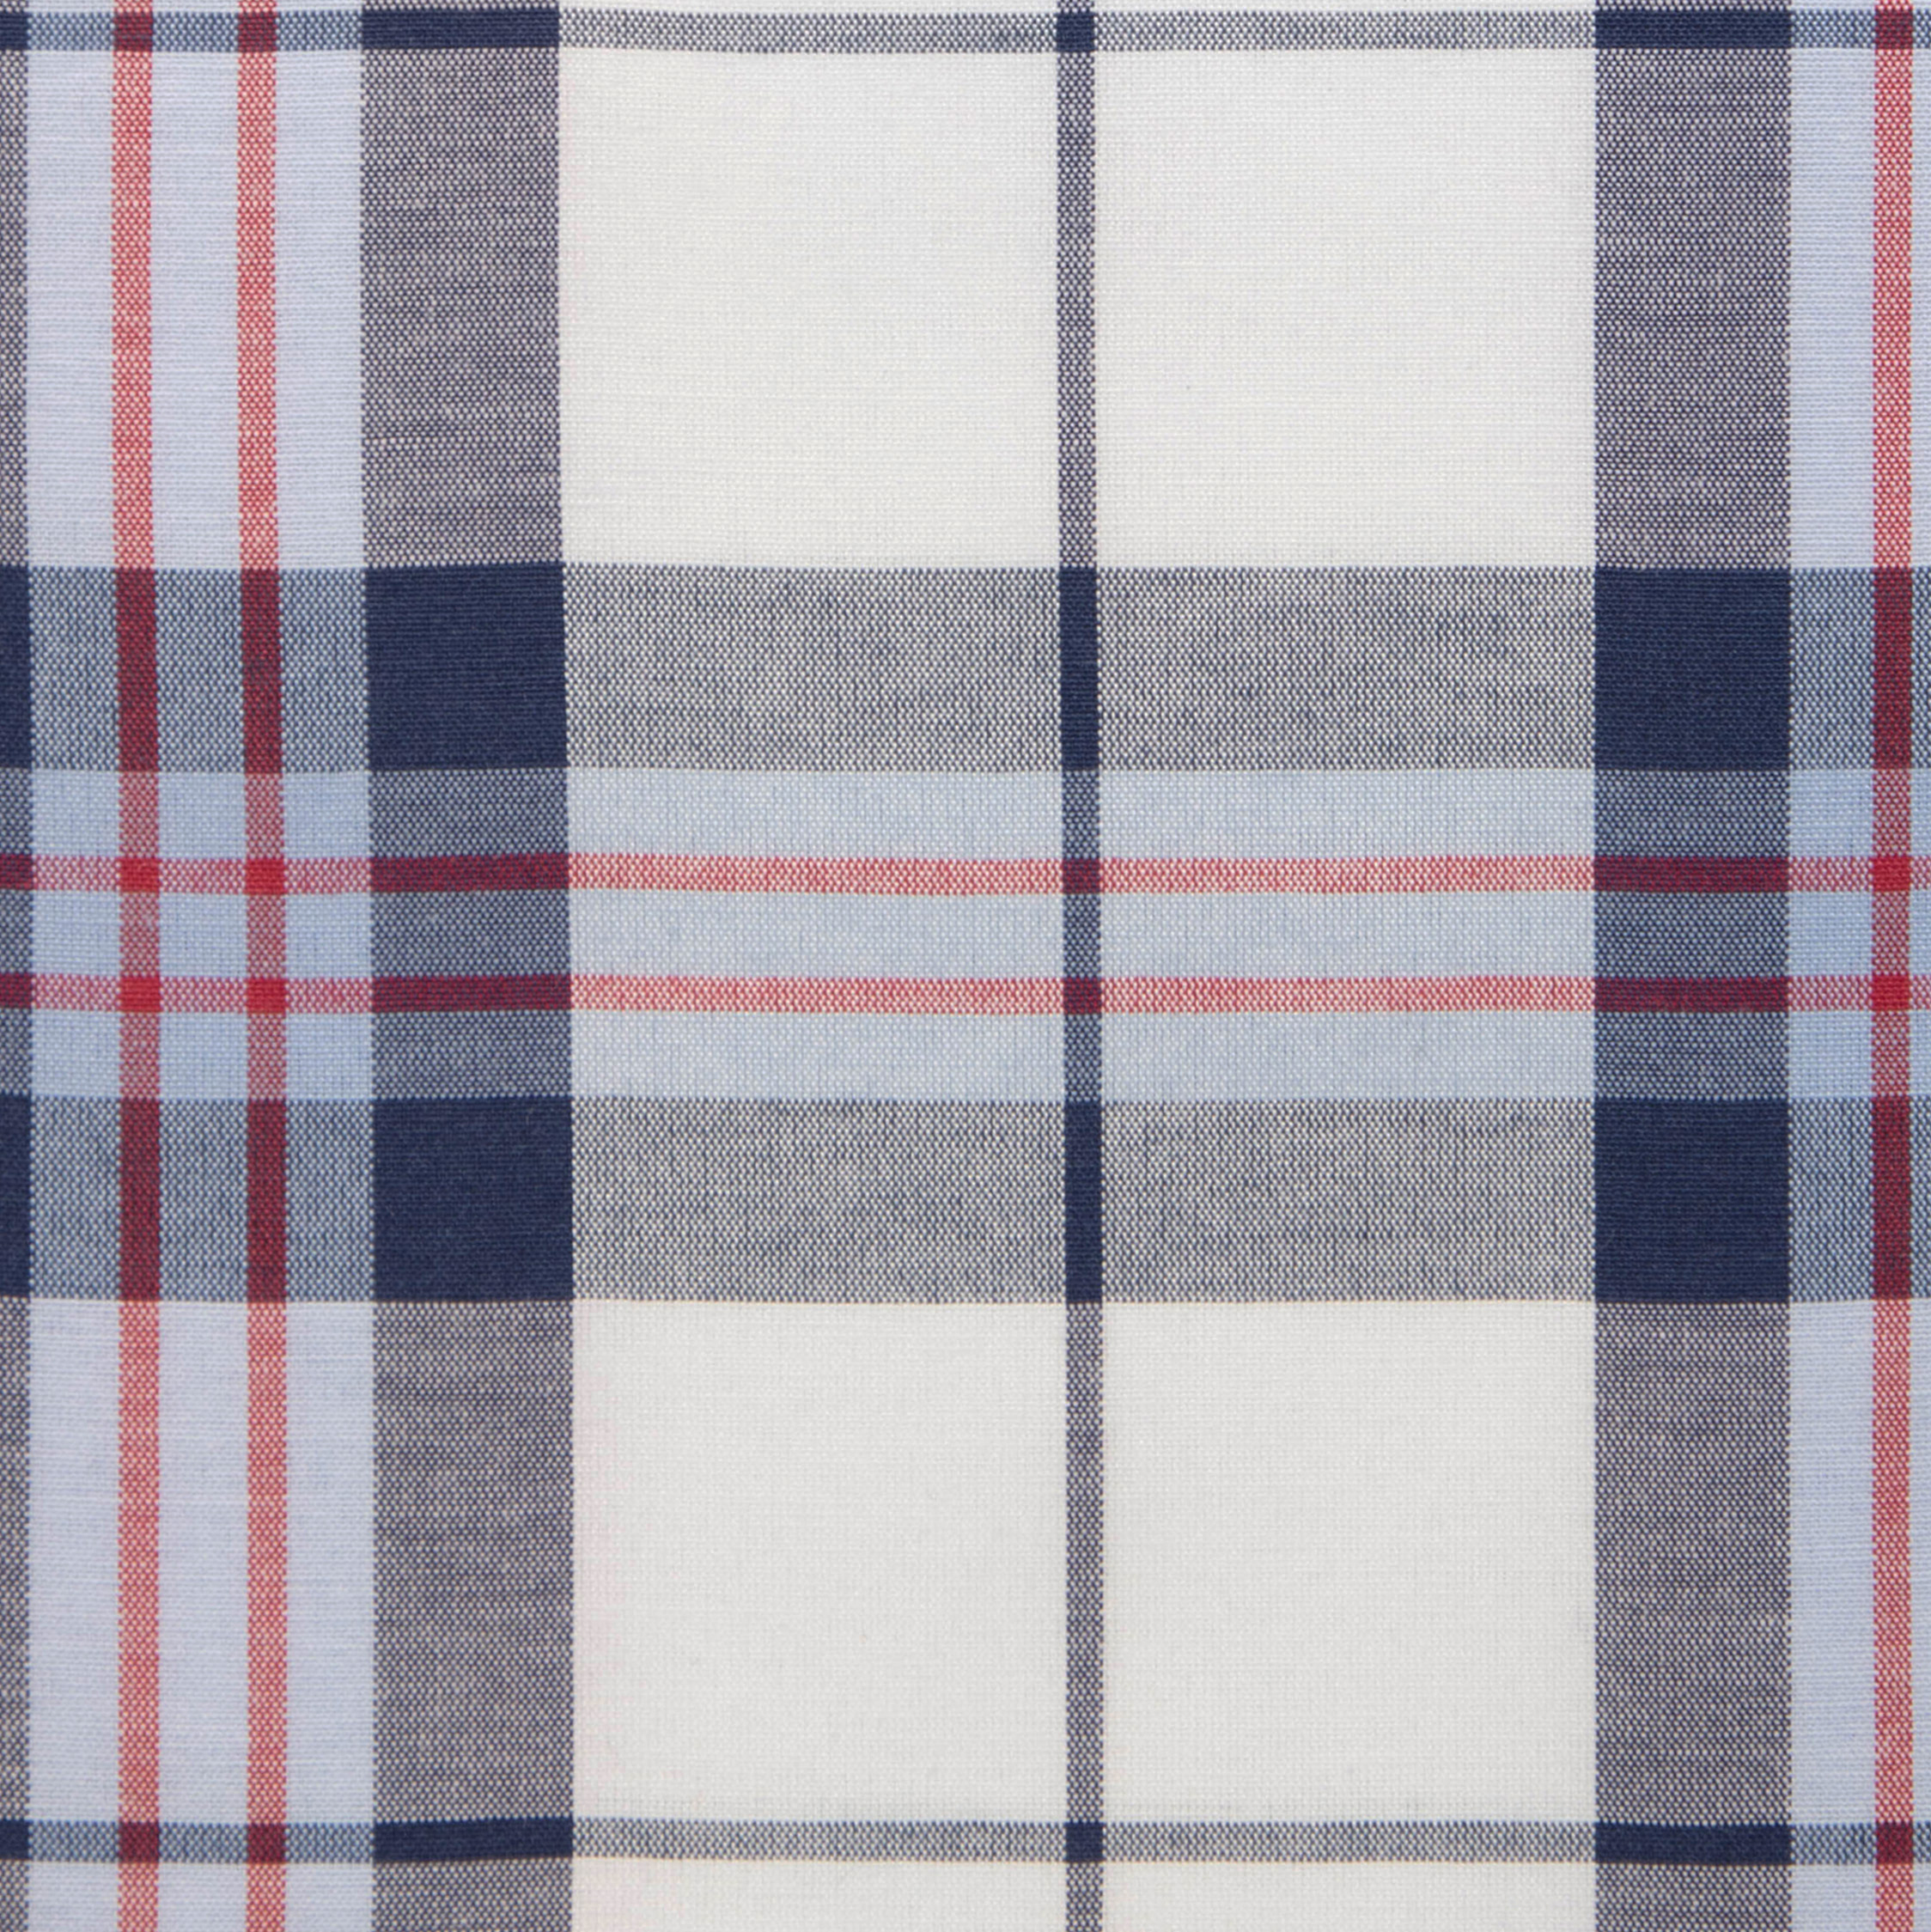 Buy tailor made shirts online - Texas Country Checks - Black, Pale Blue, Red Check